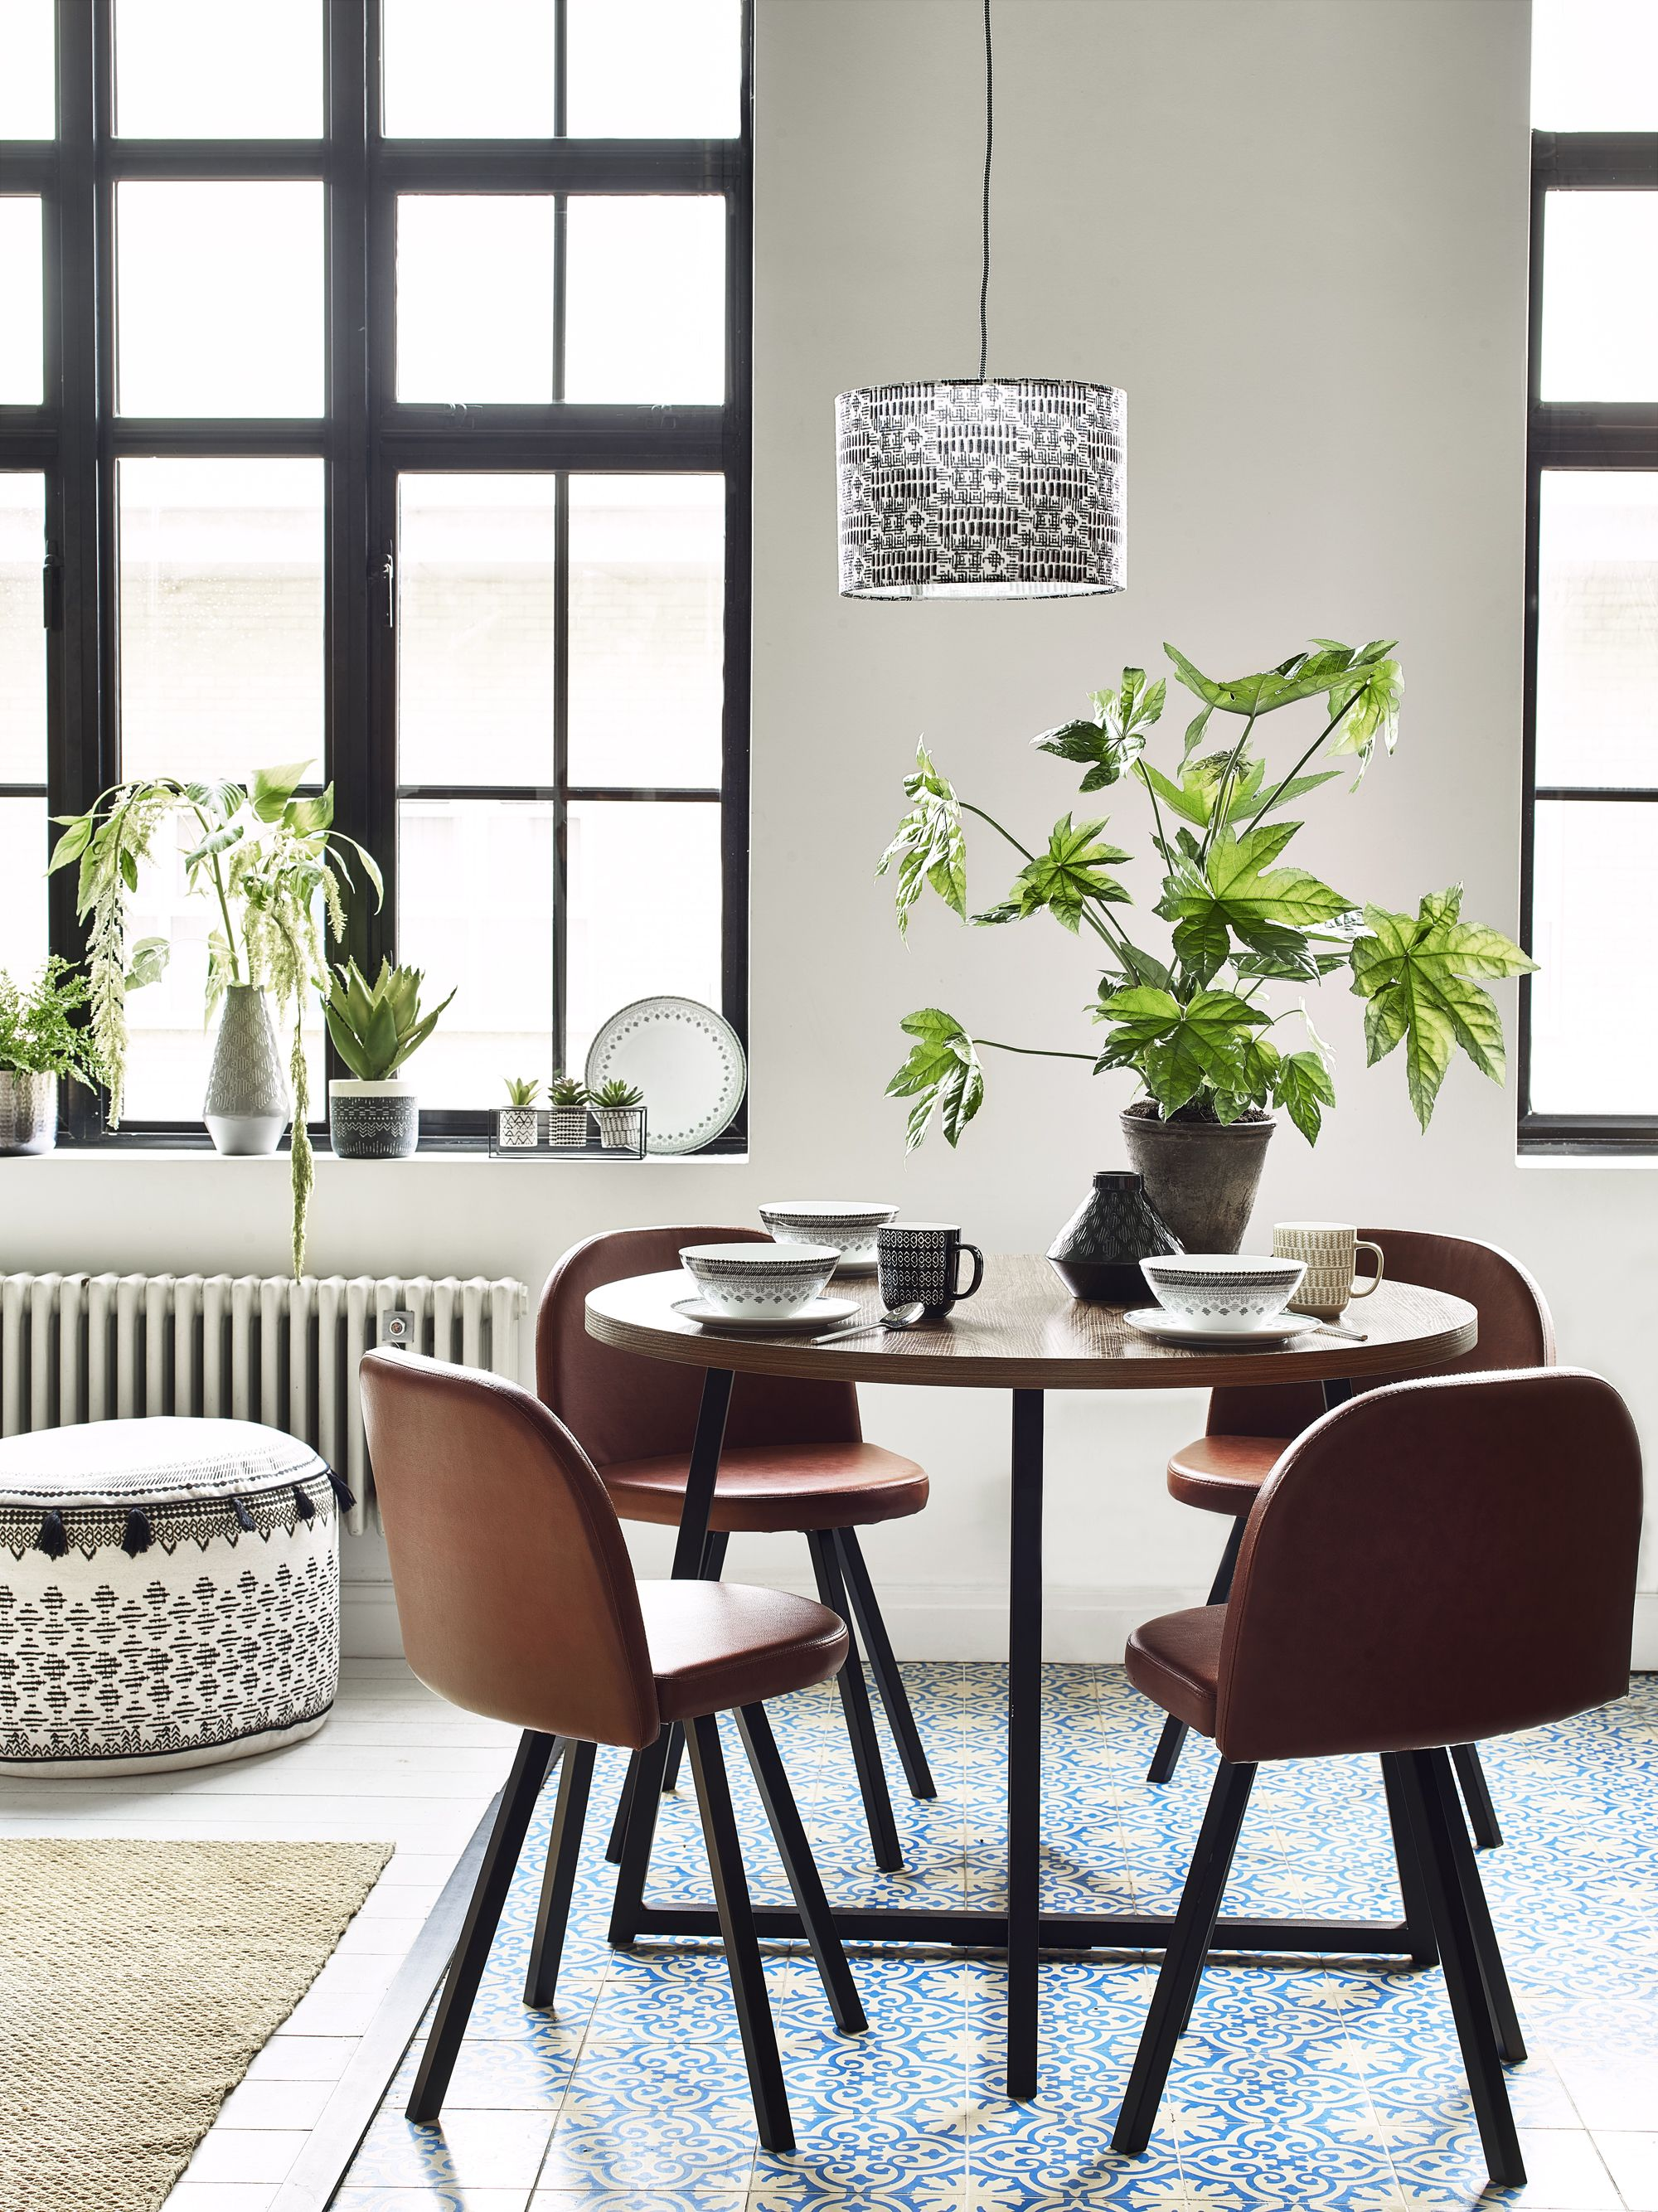 Argos Home launch new must-have interiors range for spring